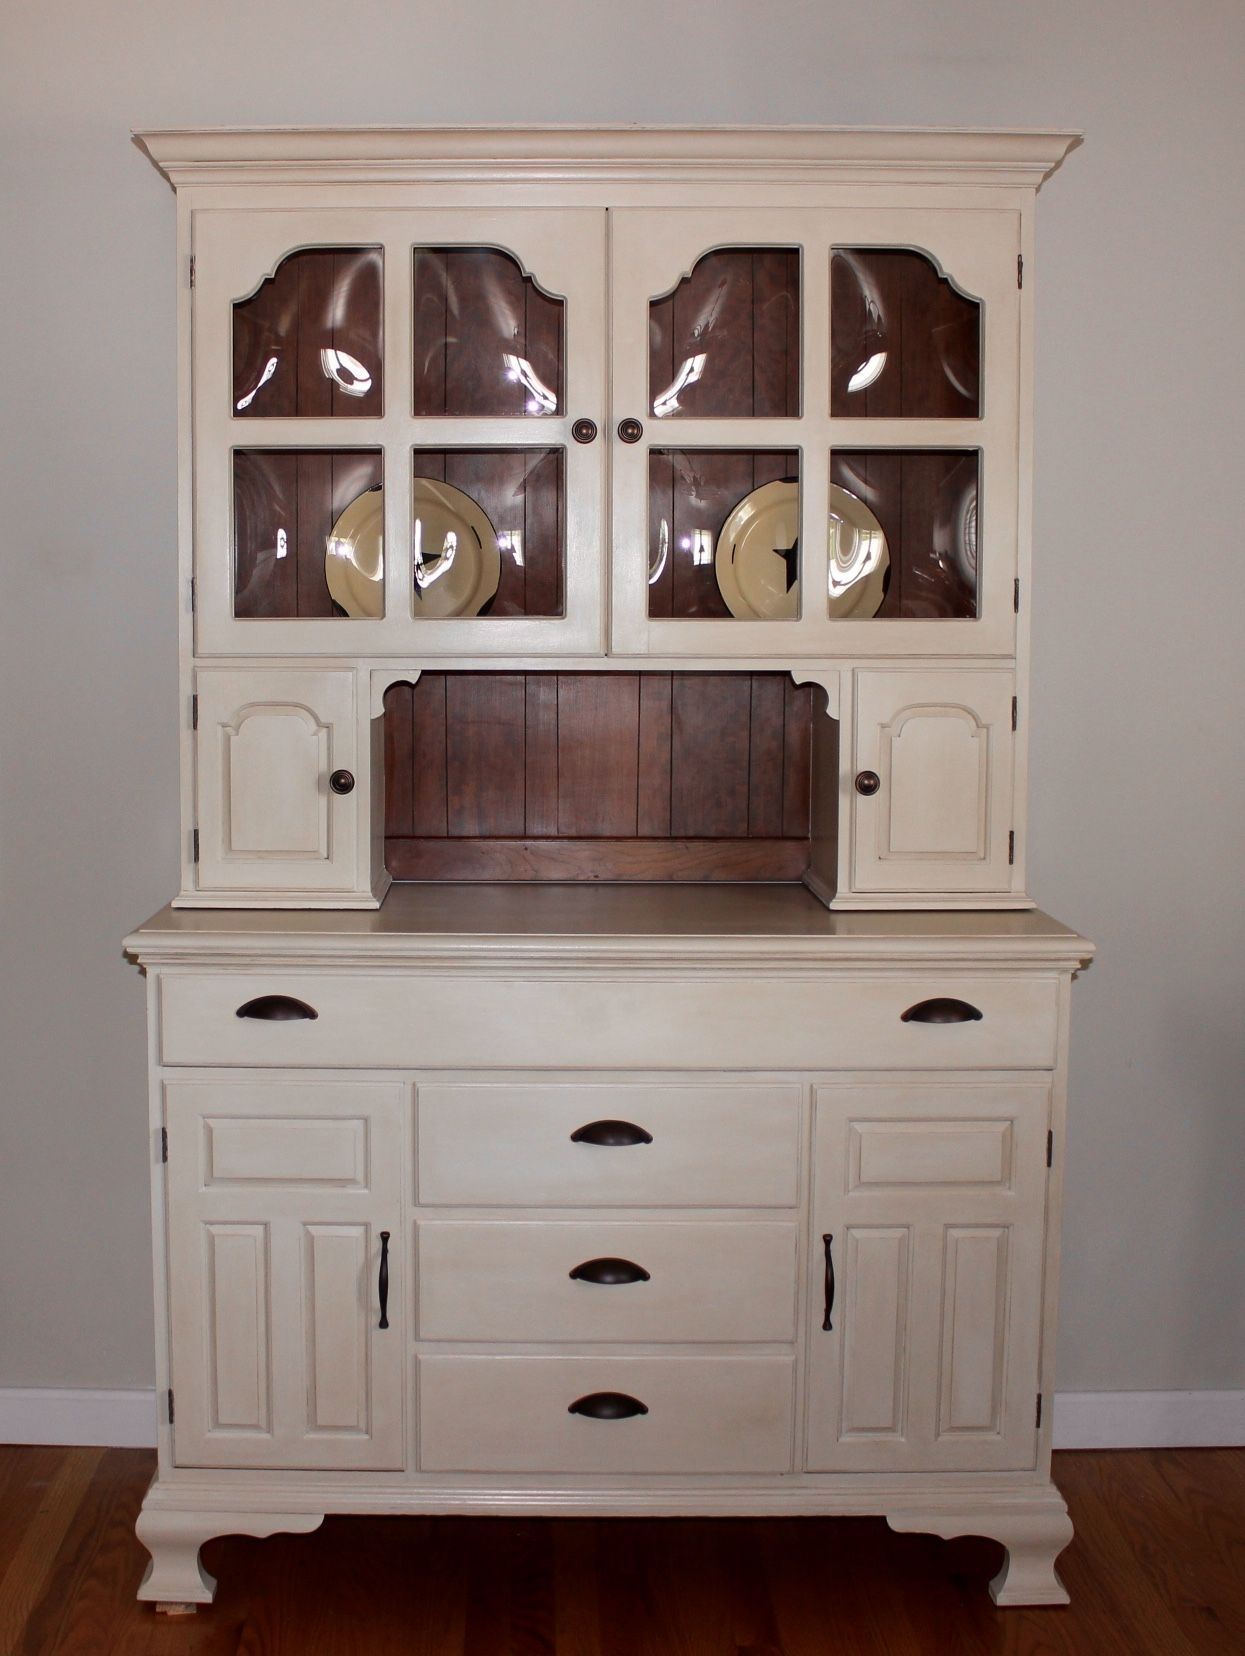 Pennsylvania House Hutch Given A New Look. | Repurposed Furniture Inside Cass 2 Door Sideboards (Photo 24 of 30)